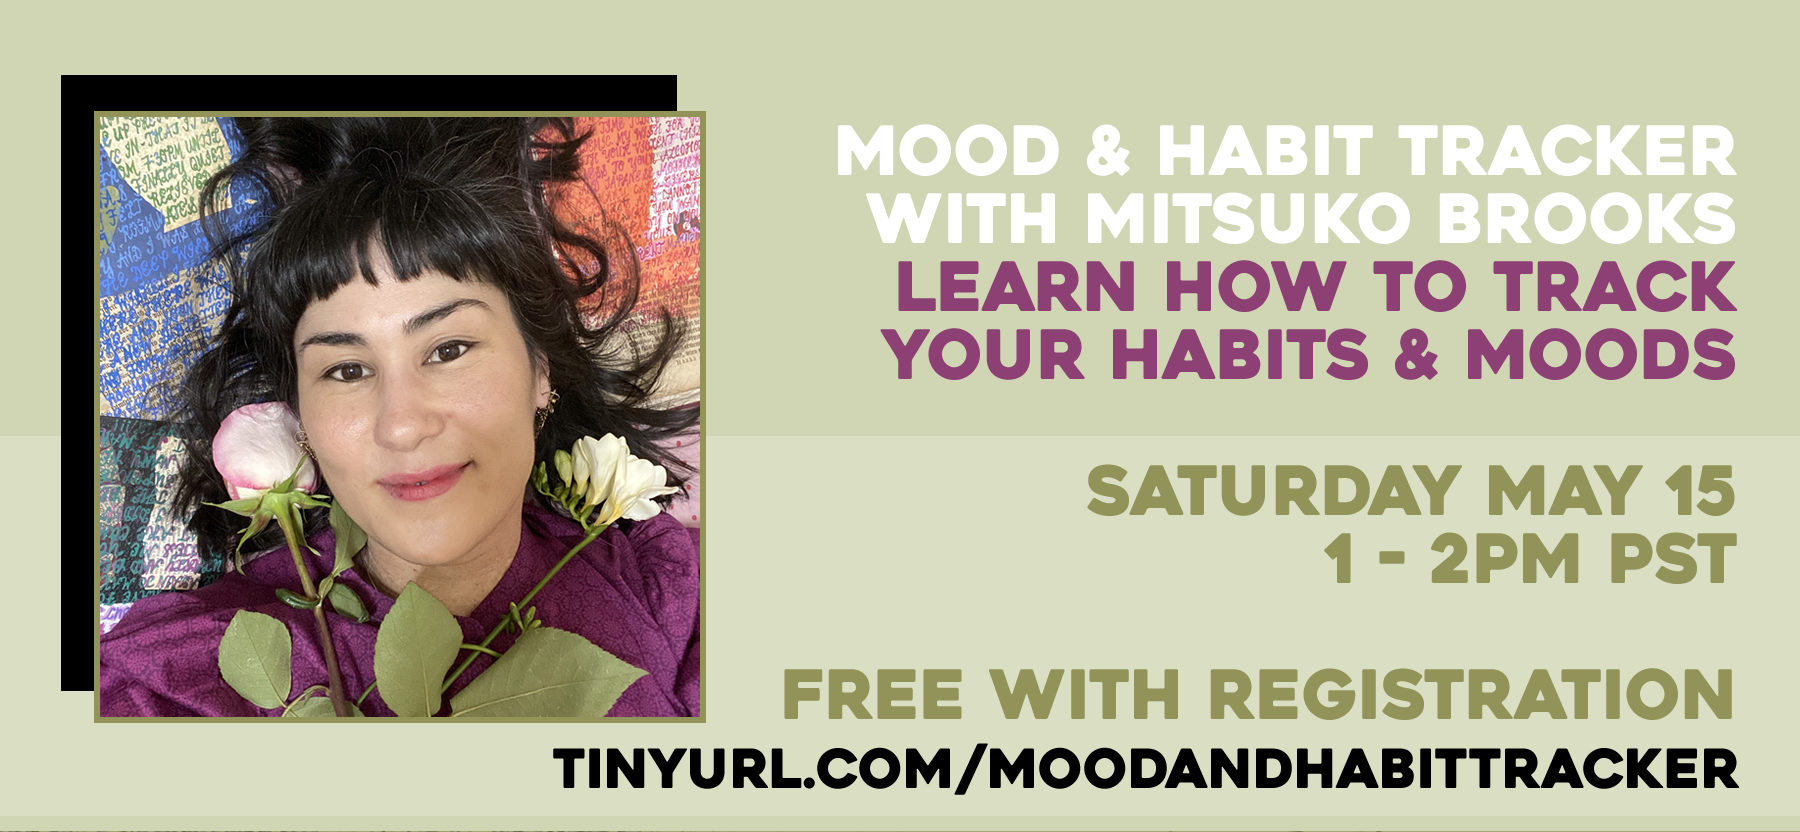 How to Survive a Quarantine: Mood and Habit Tracker with Mitsuko Brooks